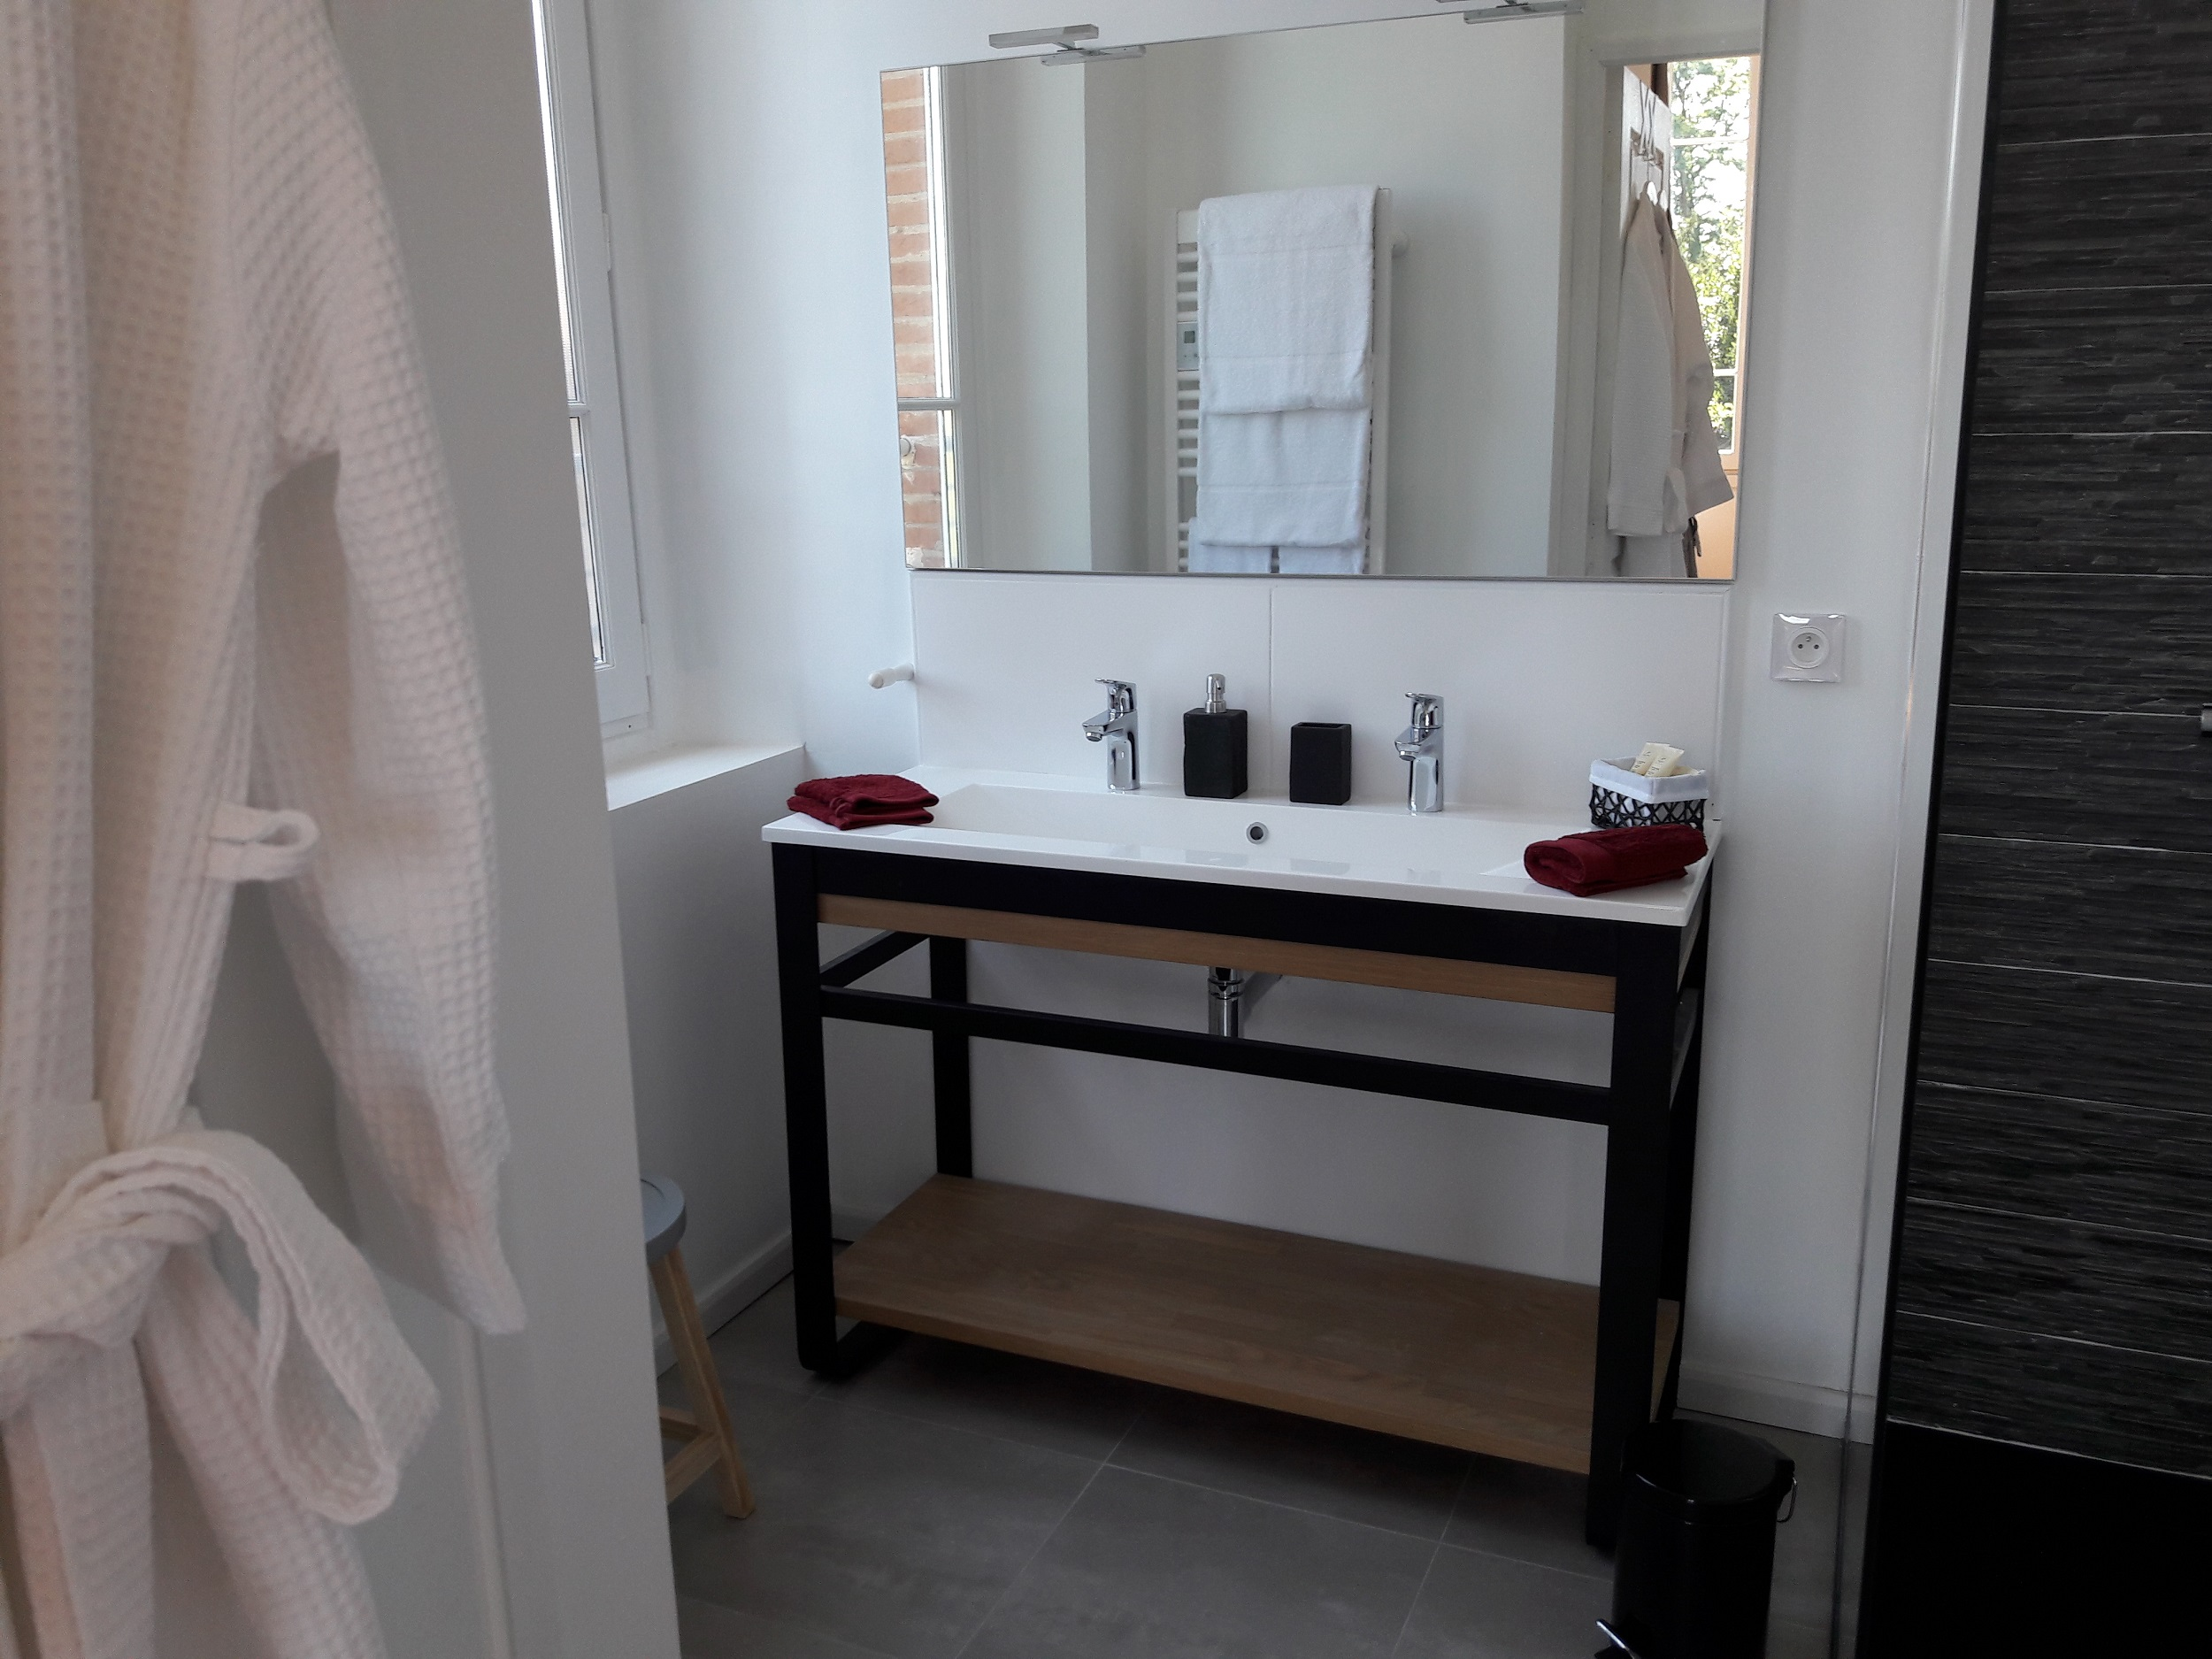 High standard bathroom with double basin sink, Italian shower and bathrobes